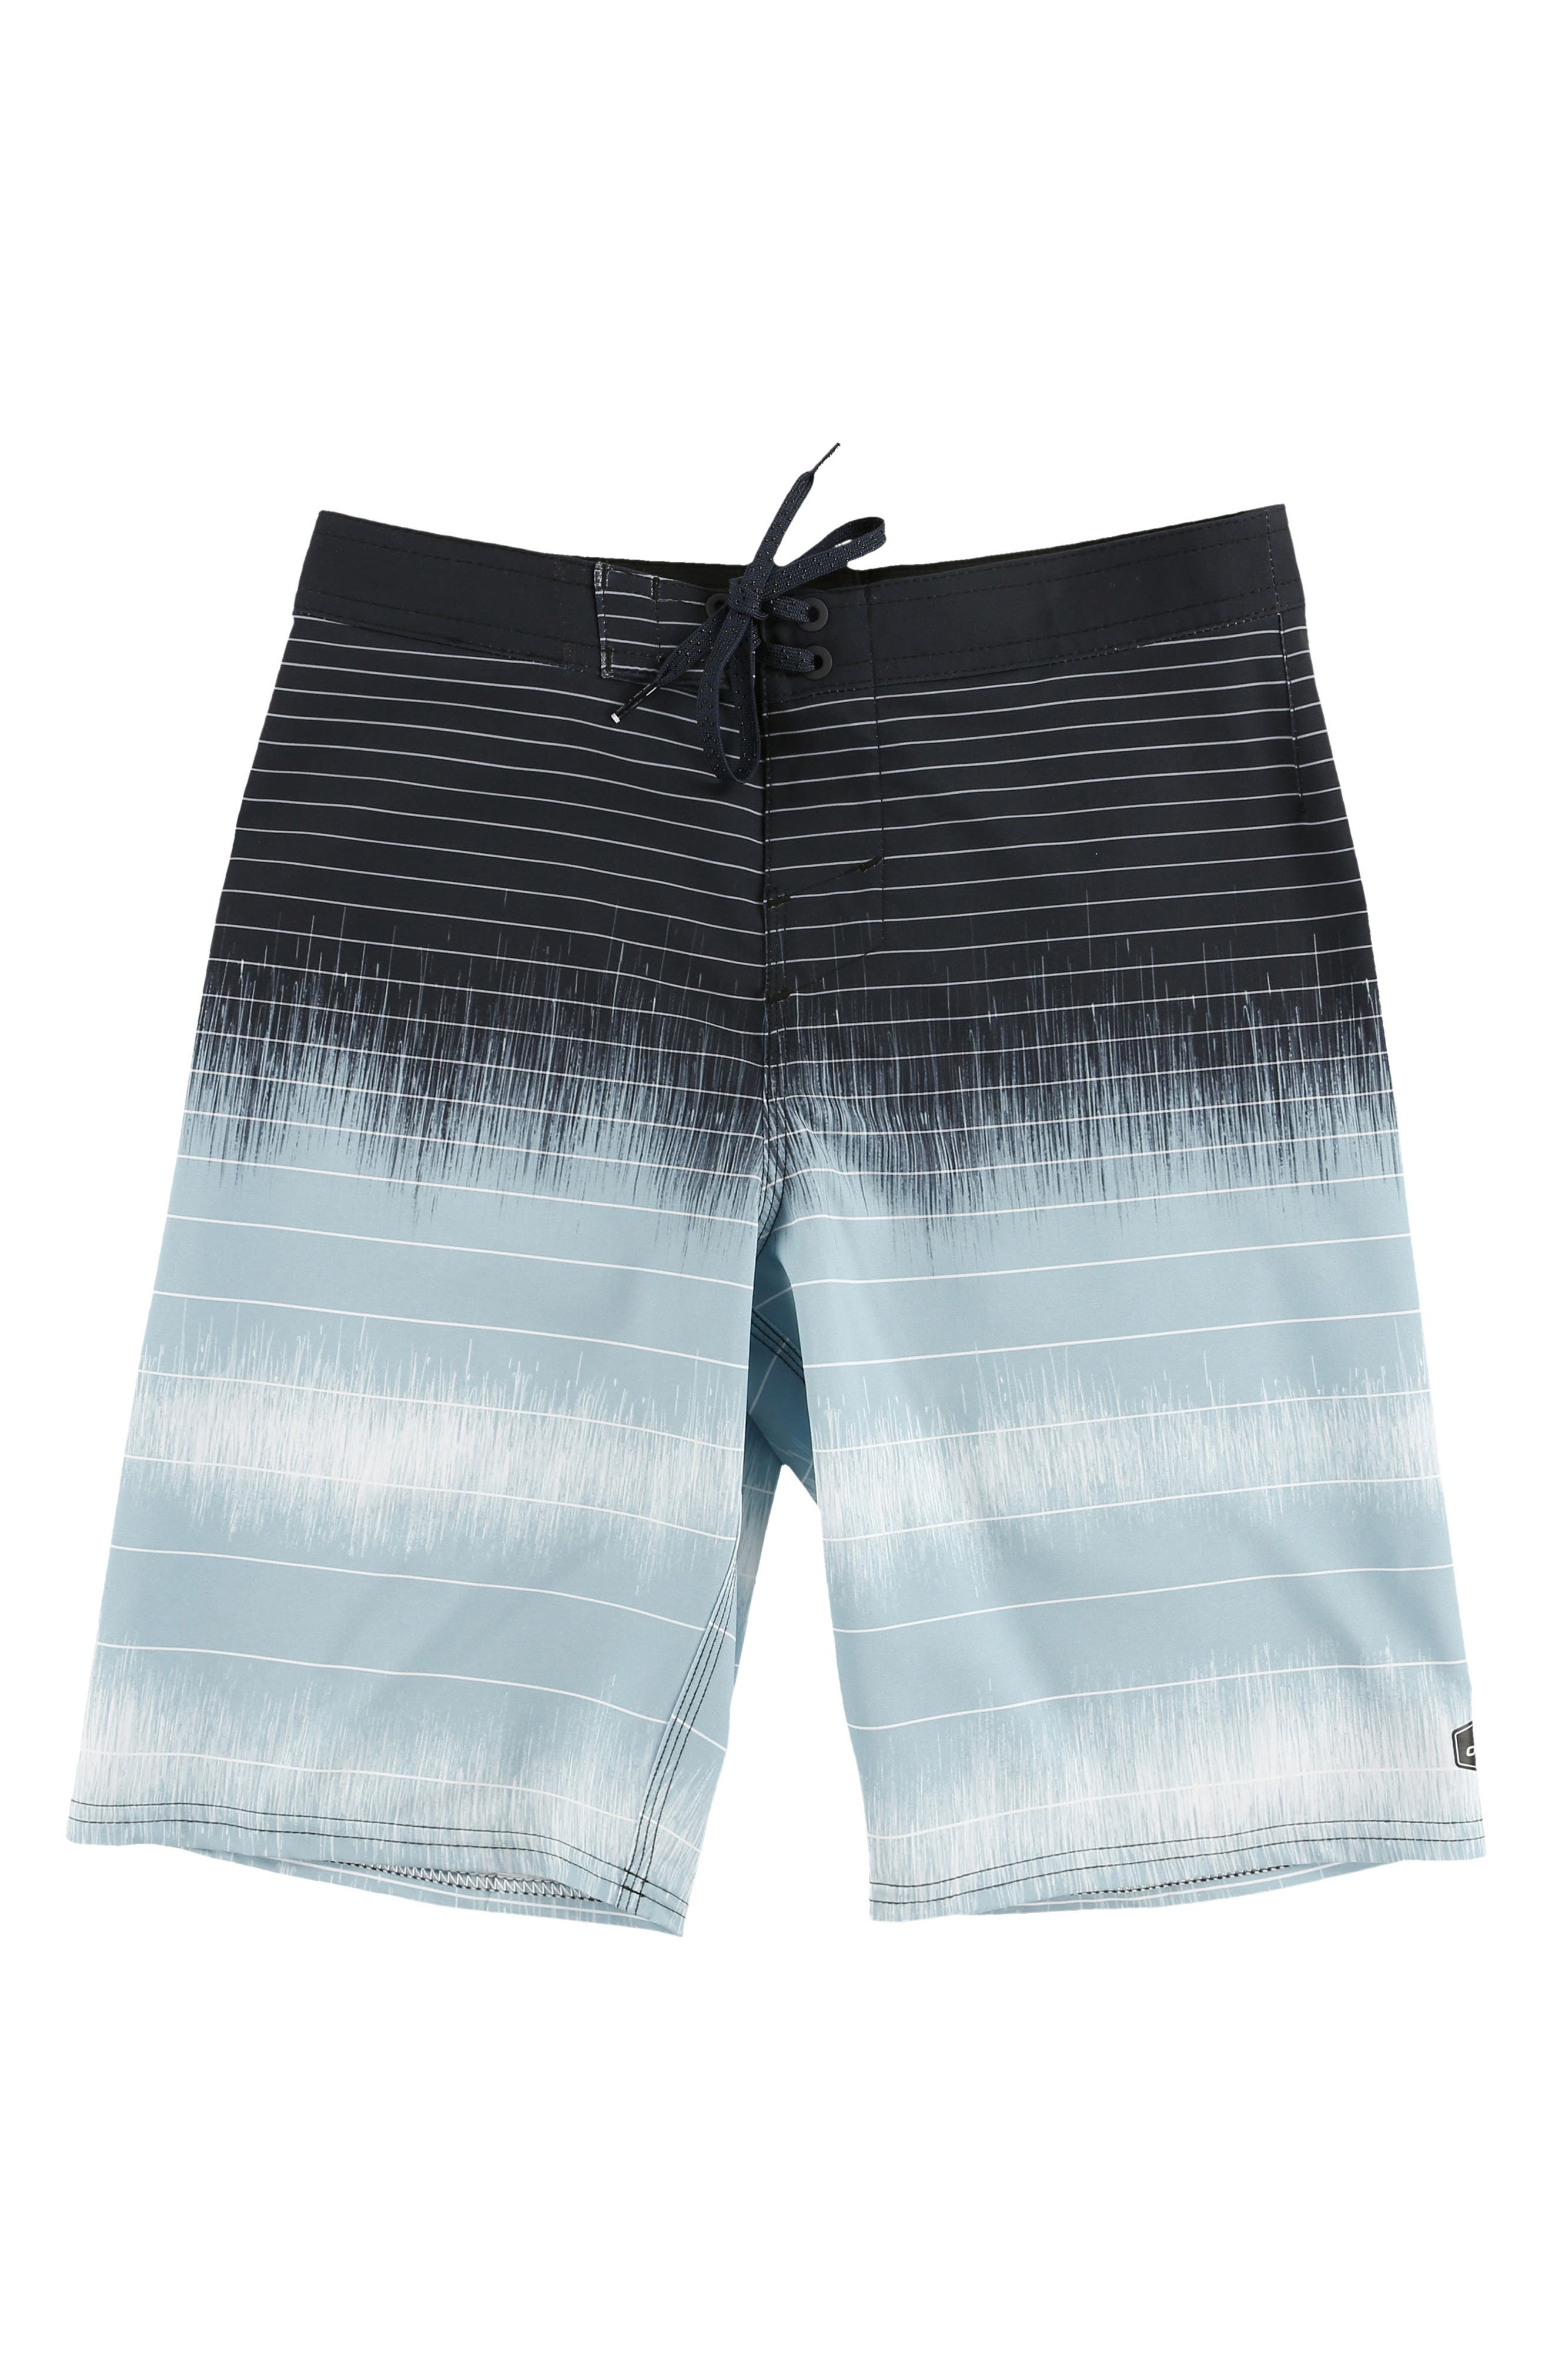 Hyperfreak Seismic Board Shorts,                             Main thumbnail 1, color,                             DARK NAVY